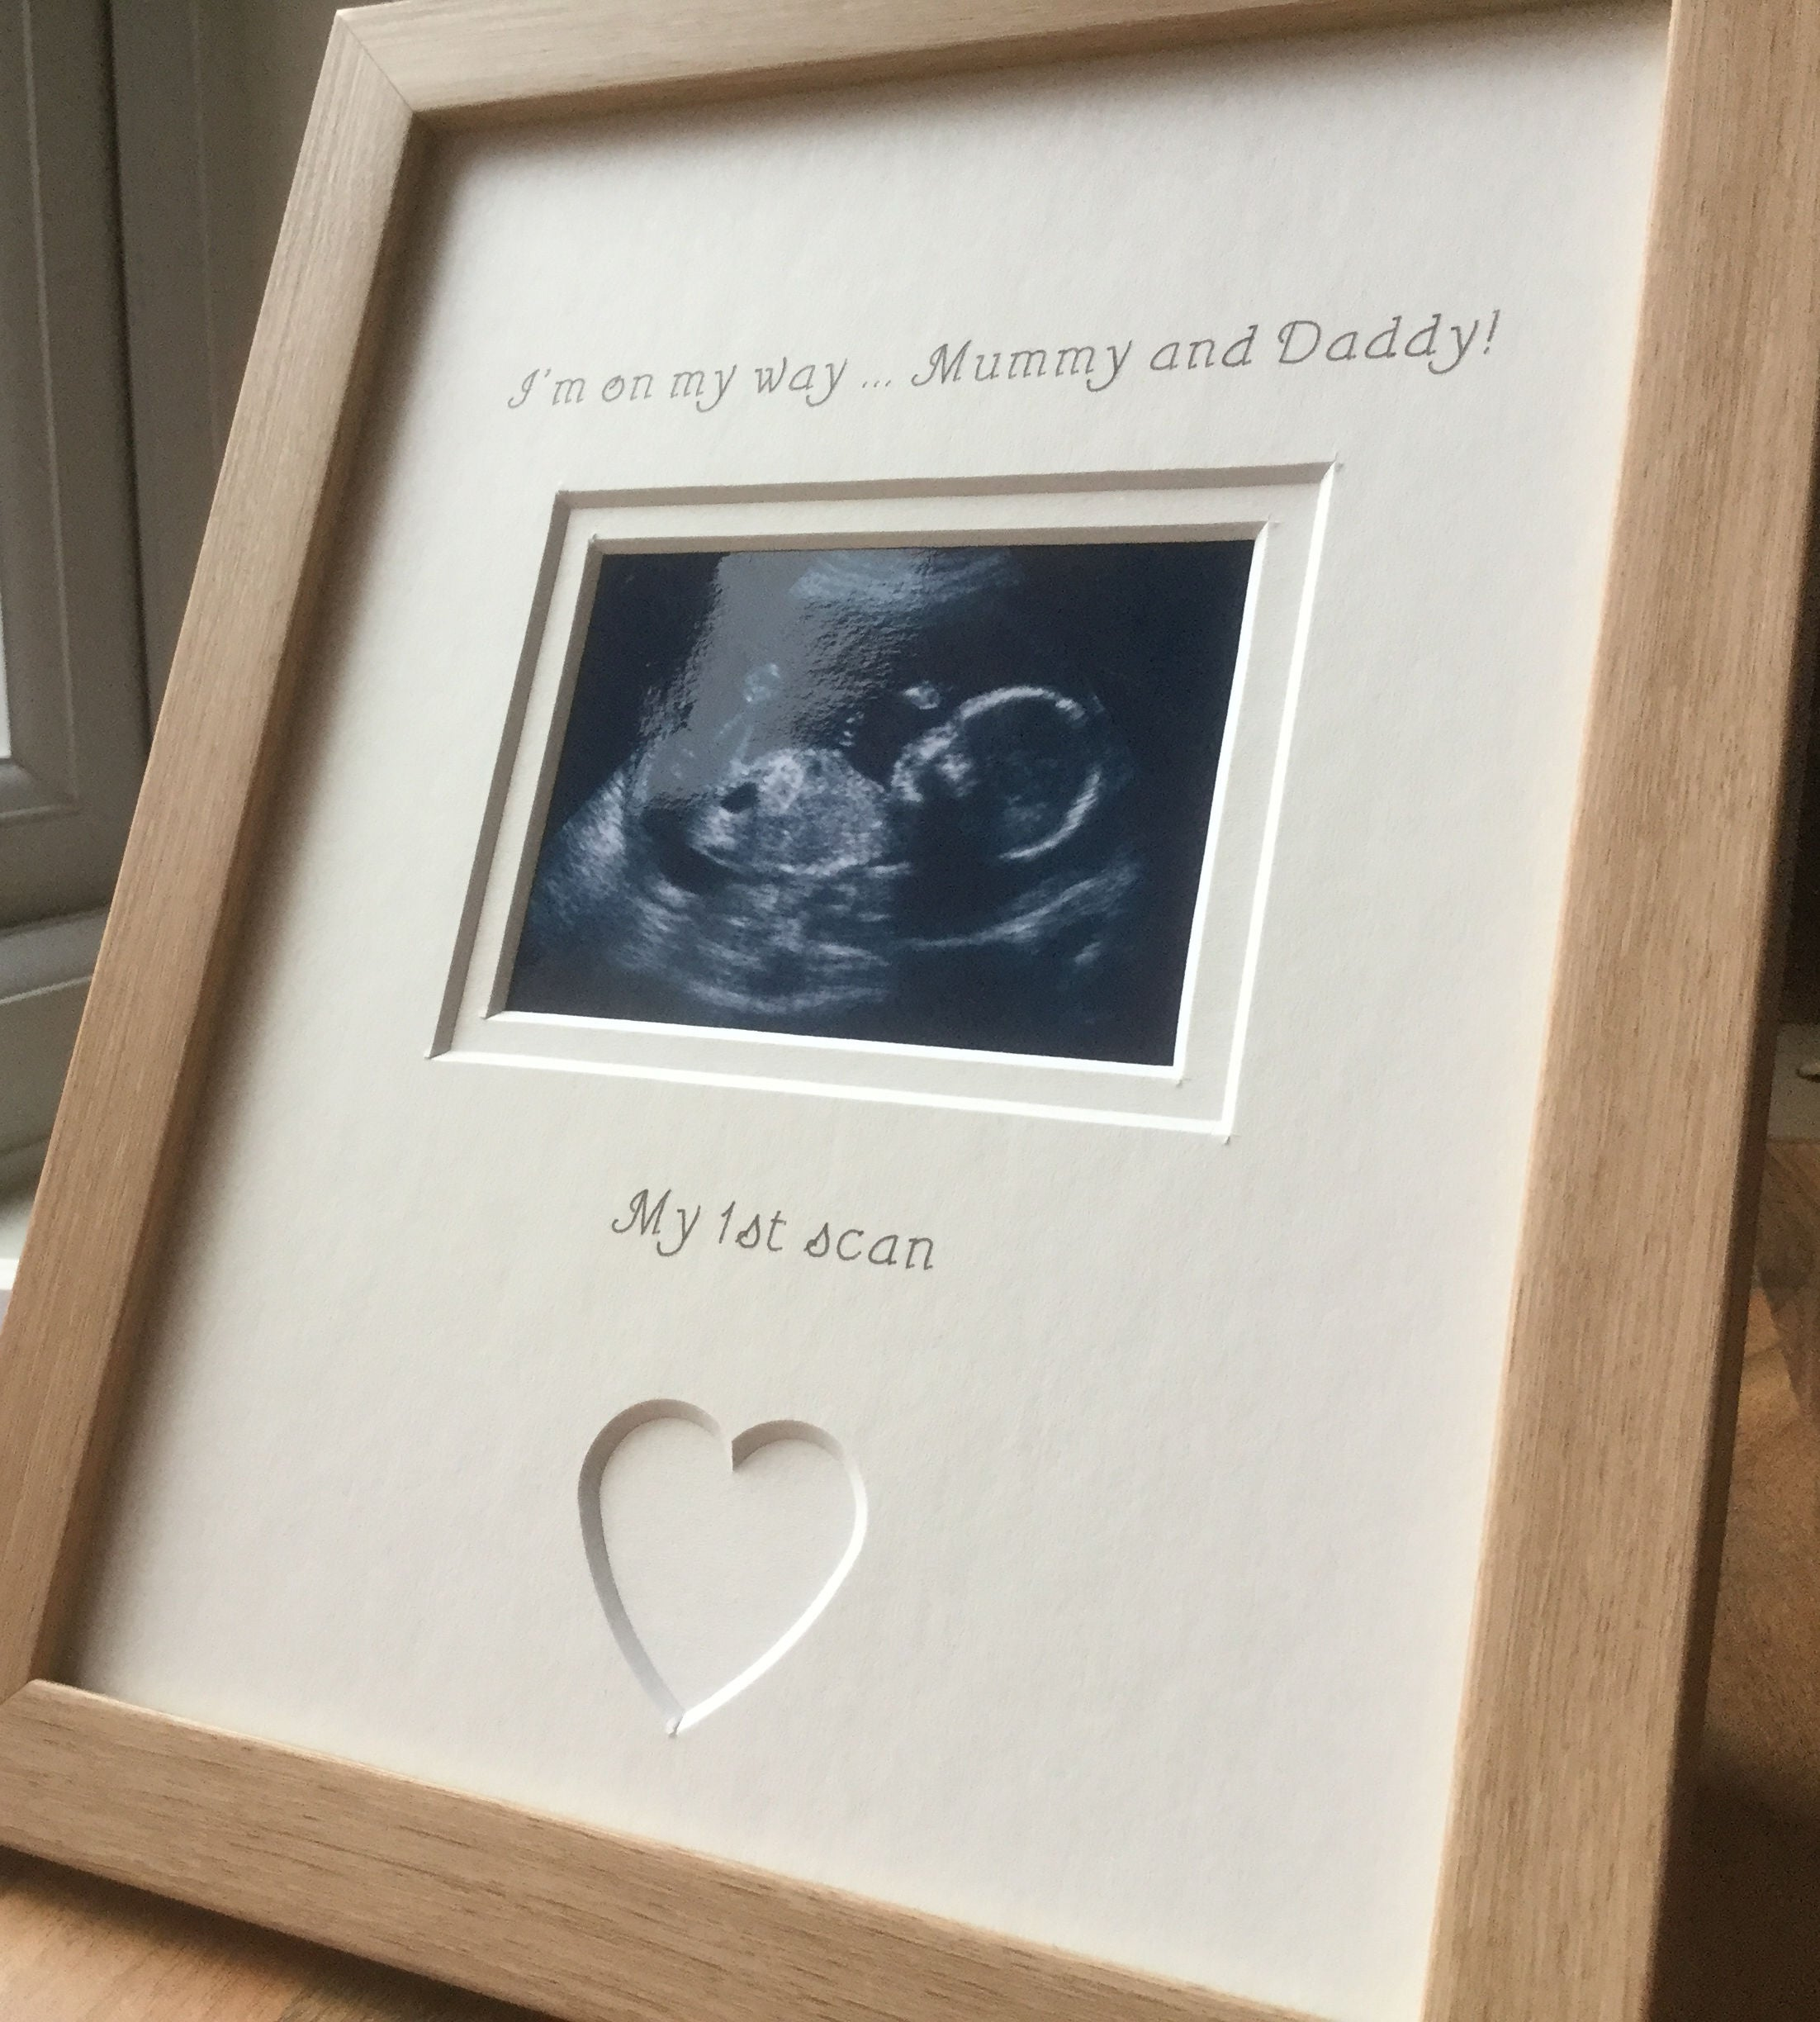 My First Scan Mummy and Daddy Photo Frame - Azana Photo Frames